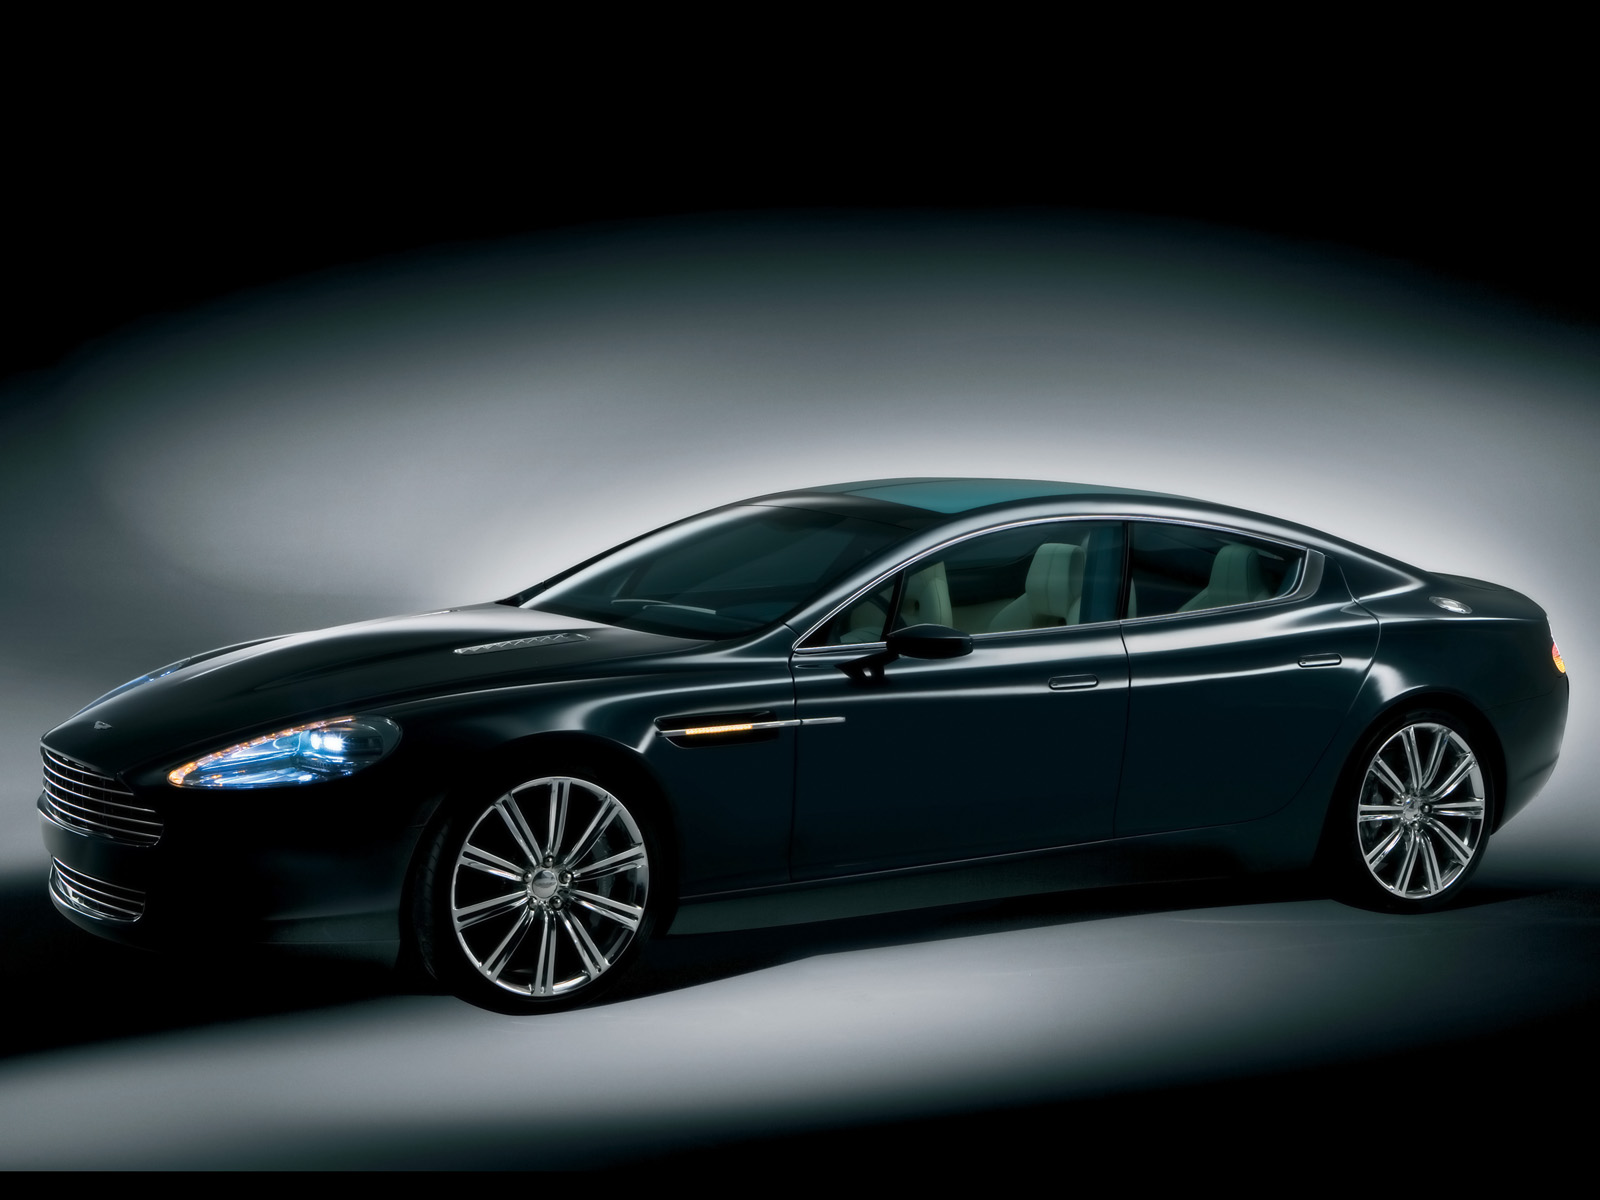 Aston-Martin Rapide photo 10